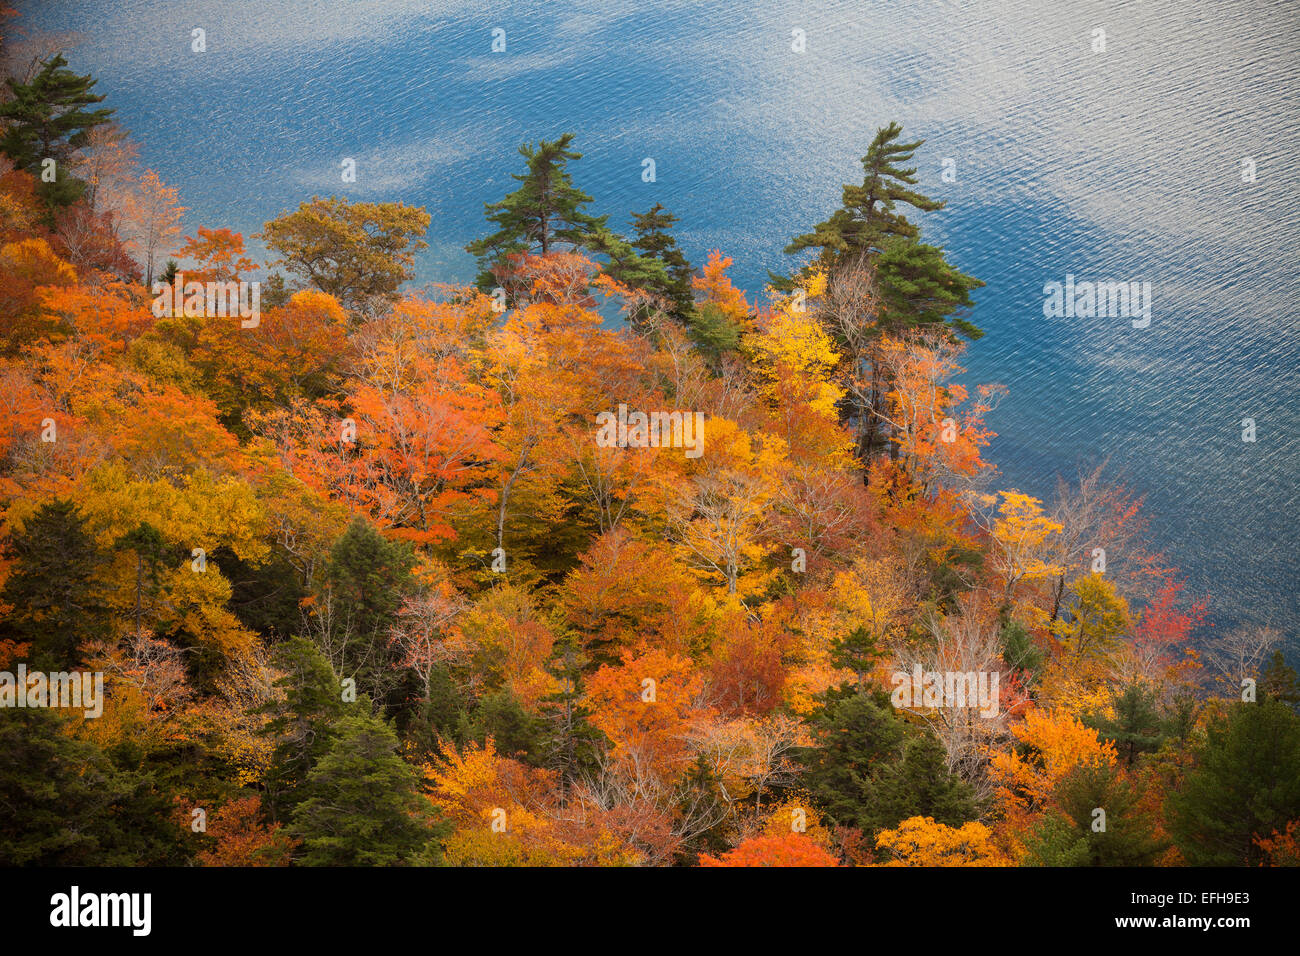 Views of autumn foliage and Jordan Pond, from South Bubble Mountain, Acadia National Park, Maine, USA Stock Photo